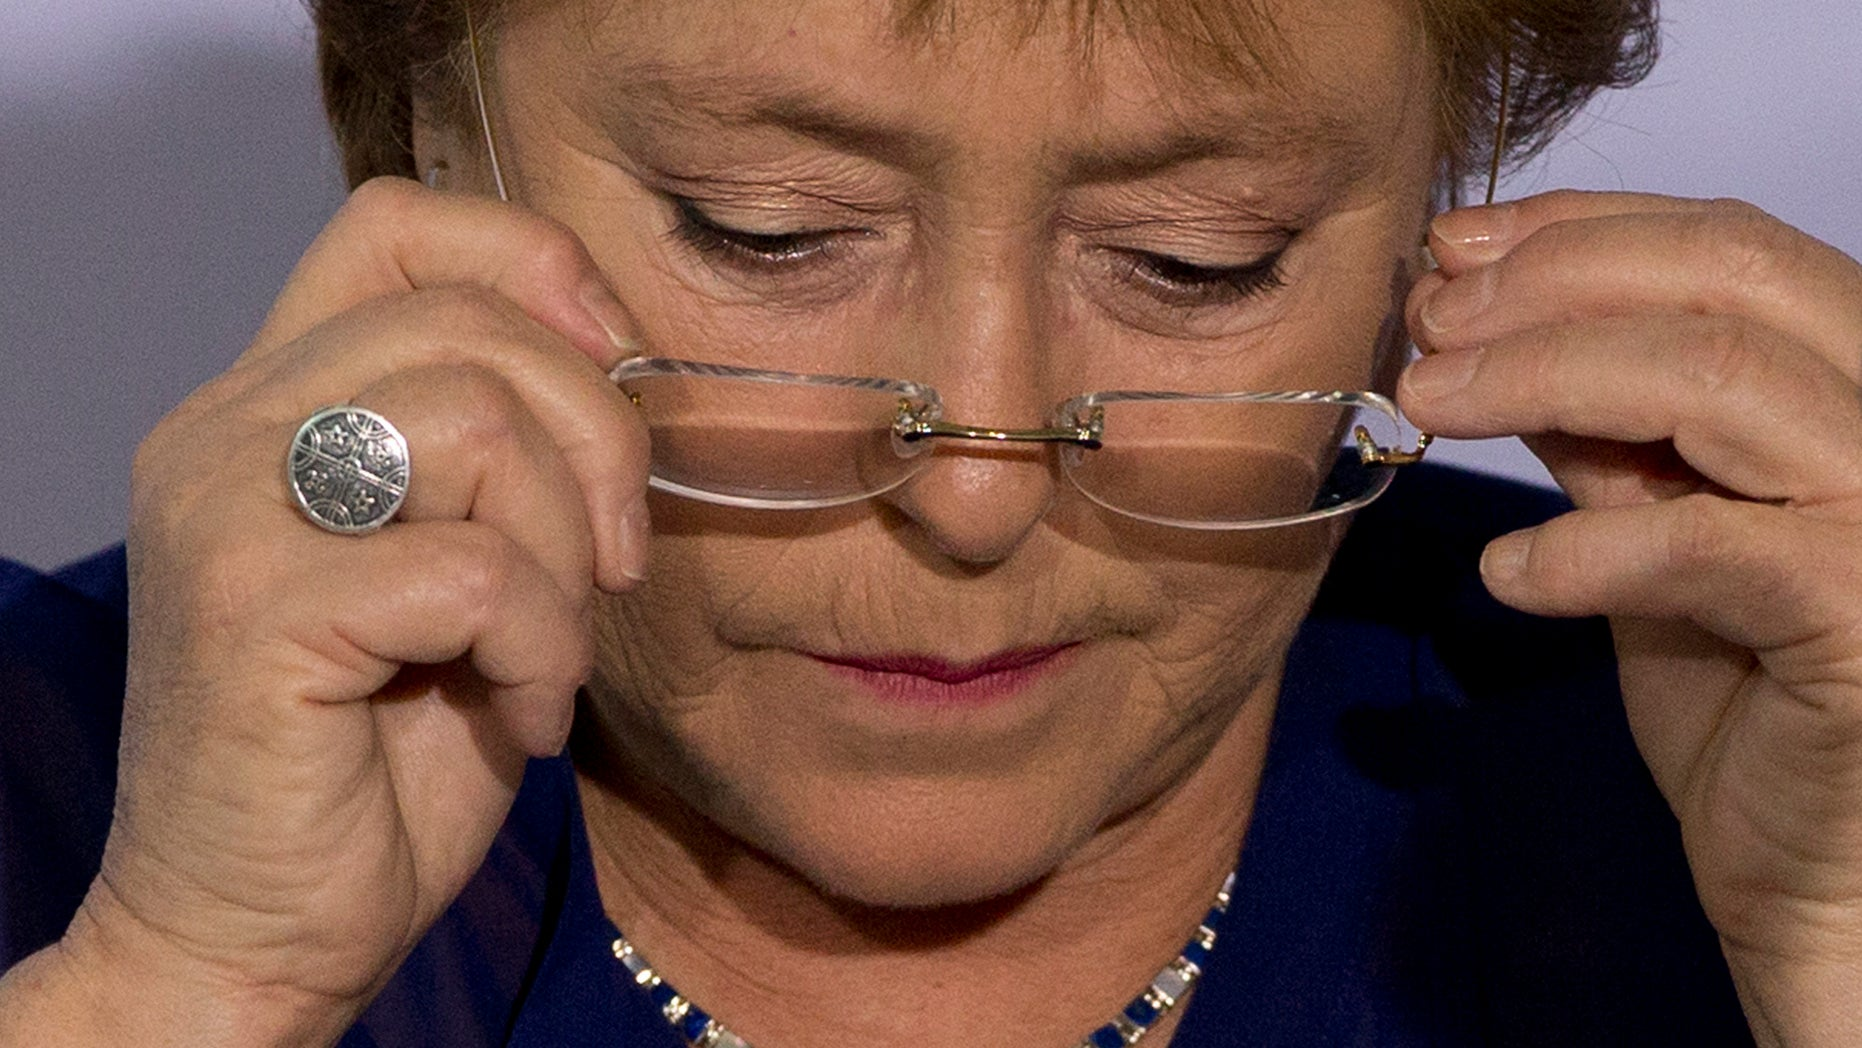 FILE - In this Dec. 9, 2014, file photo, Chile's President Michelle Bachelet puts on her glasses during an event to announce a new economic report on Latin America at the 2014 Iberoamerican Summit in Veracruz, Mexico. President Bachelet came under fire on Wednesday Feb. 11, 2015, over complaints her family got privileged access to a bank loan for a land deal. Chile's Que Pasa magazine reported that a company half-owned by Bachelet's daughter-in-law, Natalia Compagnon, received a $10 million loan from Banco de Chile. (AP Photo/Rebecca Blackwell, File)